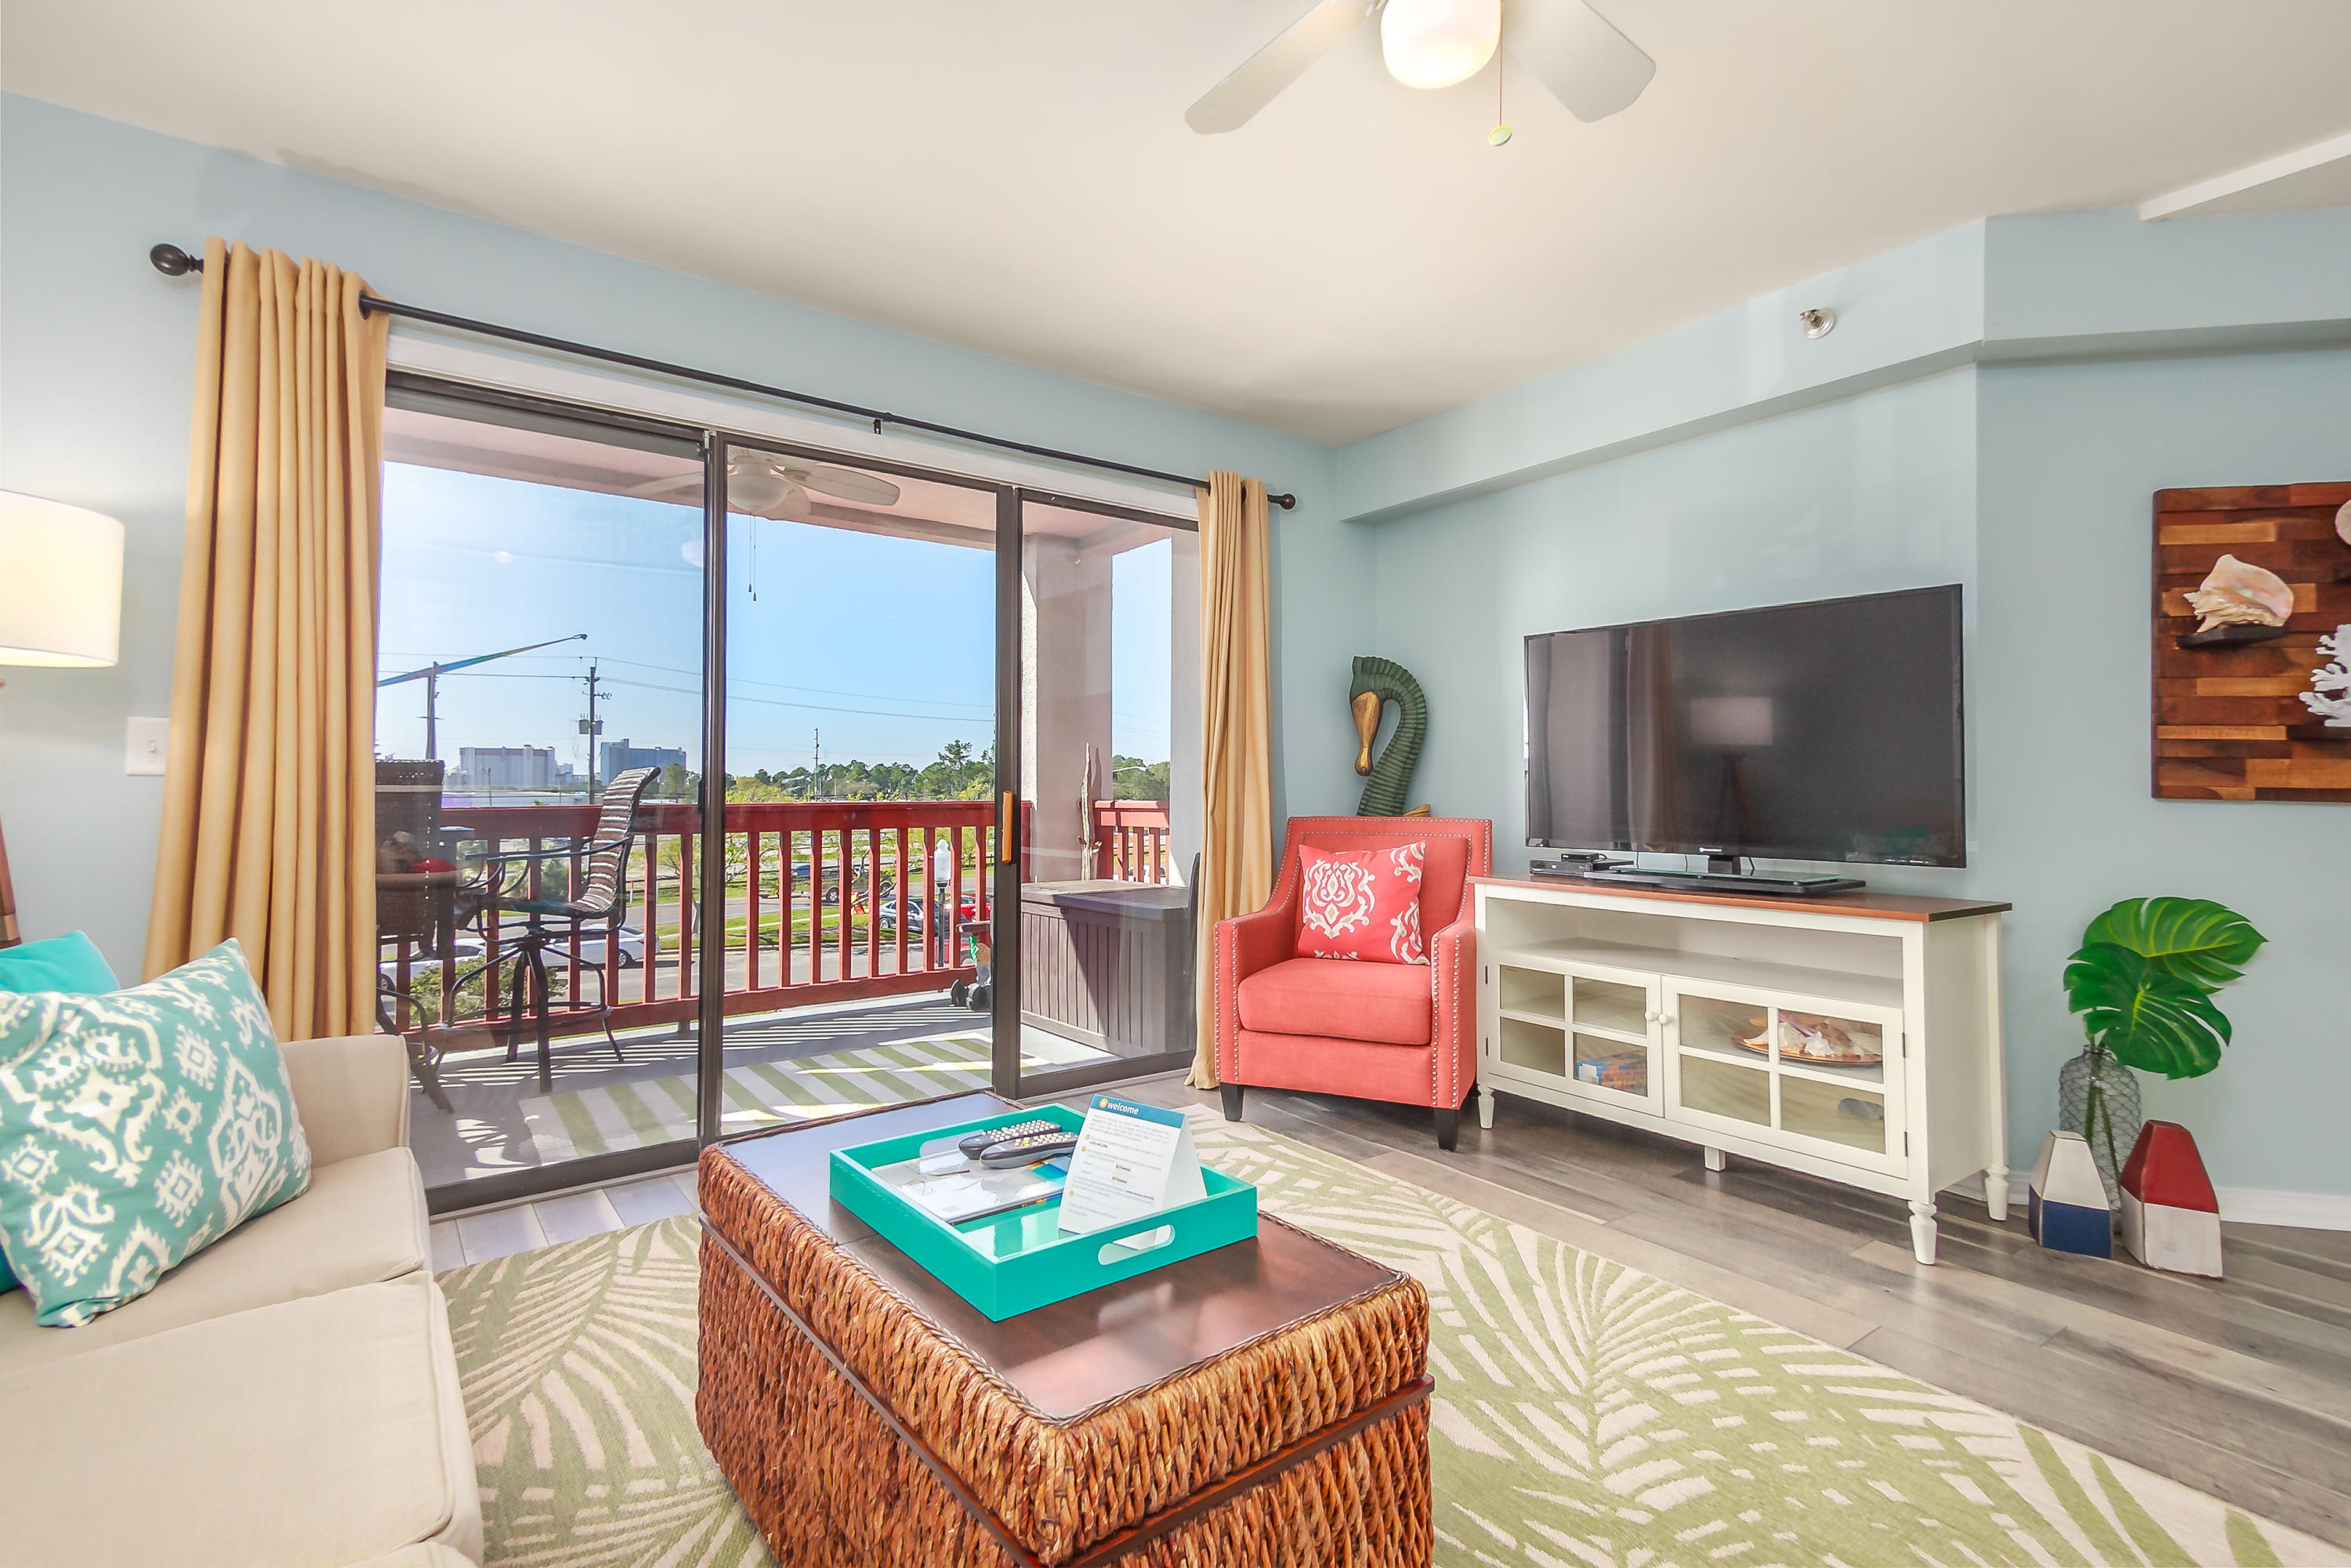 This unit won't last long come see this Beautiful 1BD/1BA condo in walking distance to beach and close to Pier Park and is rental ready. The Plaza's of St. Thomas is a wonderful complex with Boat Launch, Community Pools, Elevators, fishing, Gated Community, Pets Allowed, Picnic Area, Retail Shops, Tennis Courts, Dock. This unit has been upgraded and is perfect for a 2nd home getaway or as an investment under $150k.Recent upgrades include new Flooring , paint popcorn ceiling removed in living room kitchen and bath, new glass on sliding patio door, new screennew vanity and toilet and also new built out owners closet. Access to all condo docs at http://stsmoa.com/plaza/ Vacasa rental site  https://www.vacasa.com/unit.php?UnitID=12165